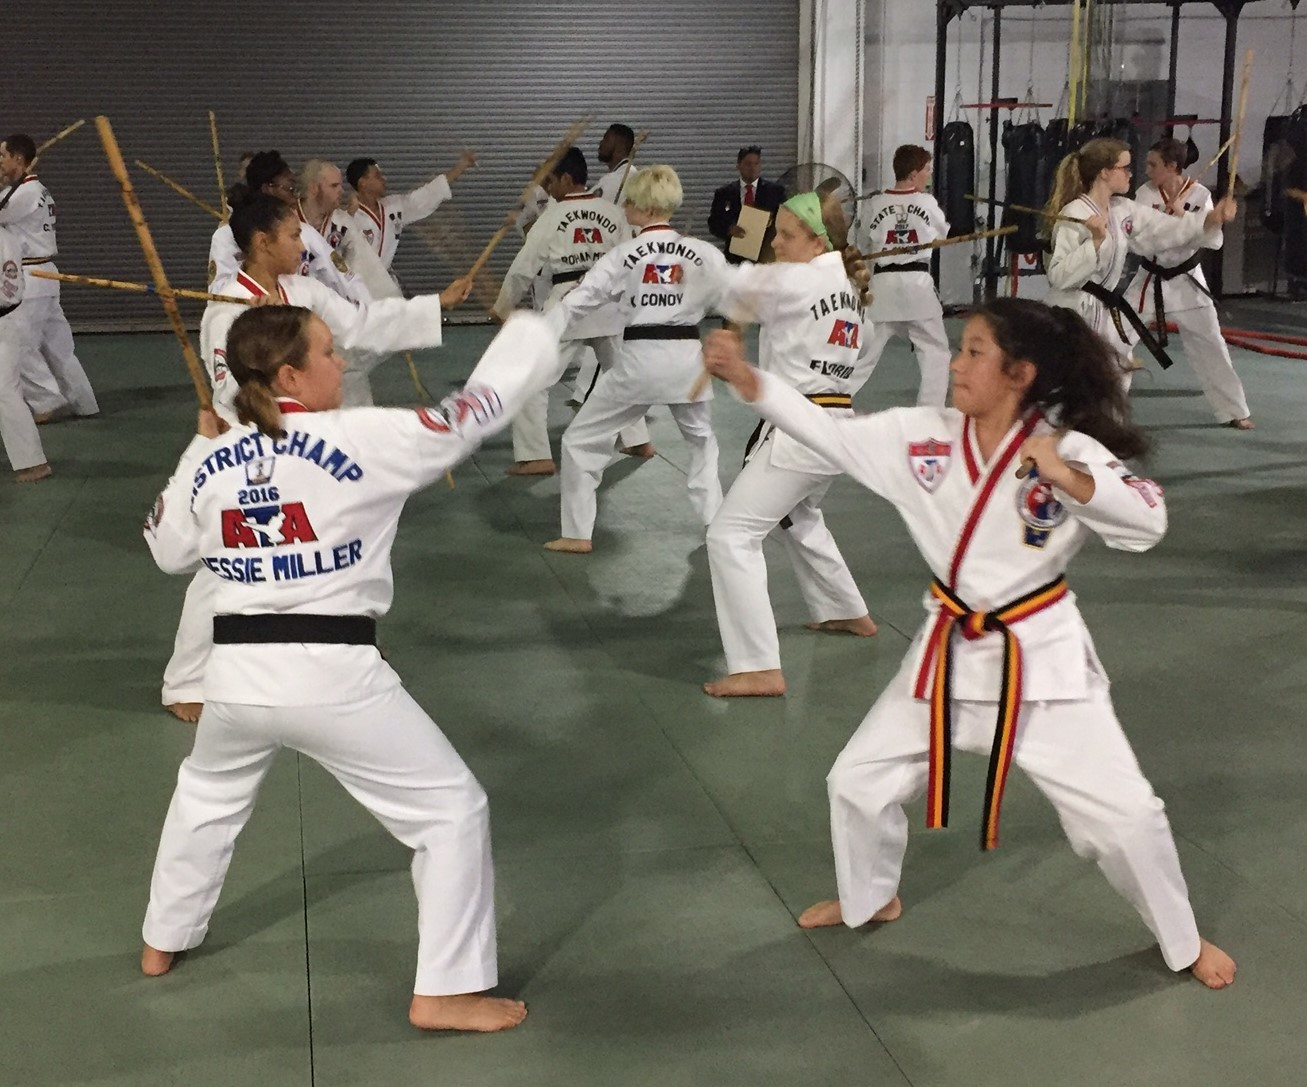 Jessie Miller (left) and Lilly Sonn work on their karate moves.